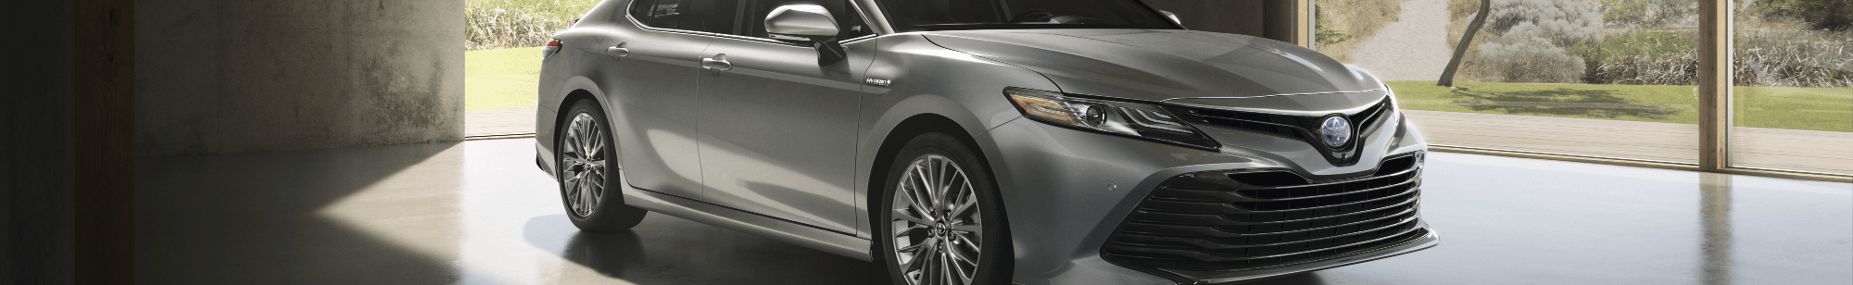 2018-Toyota-Camry-Toronto-Feature